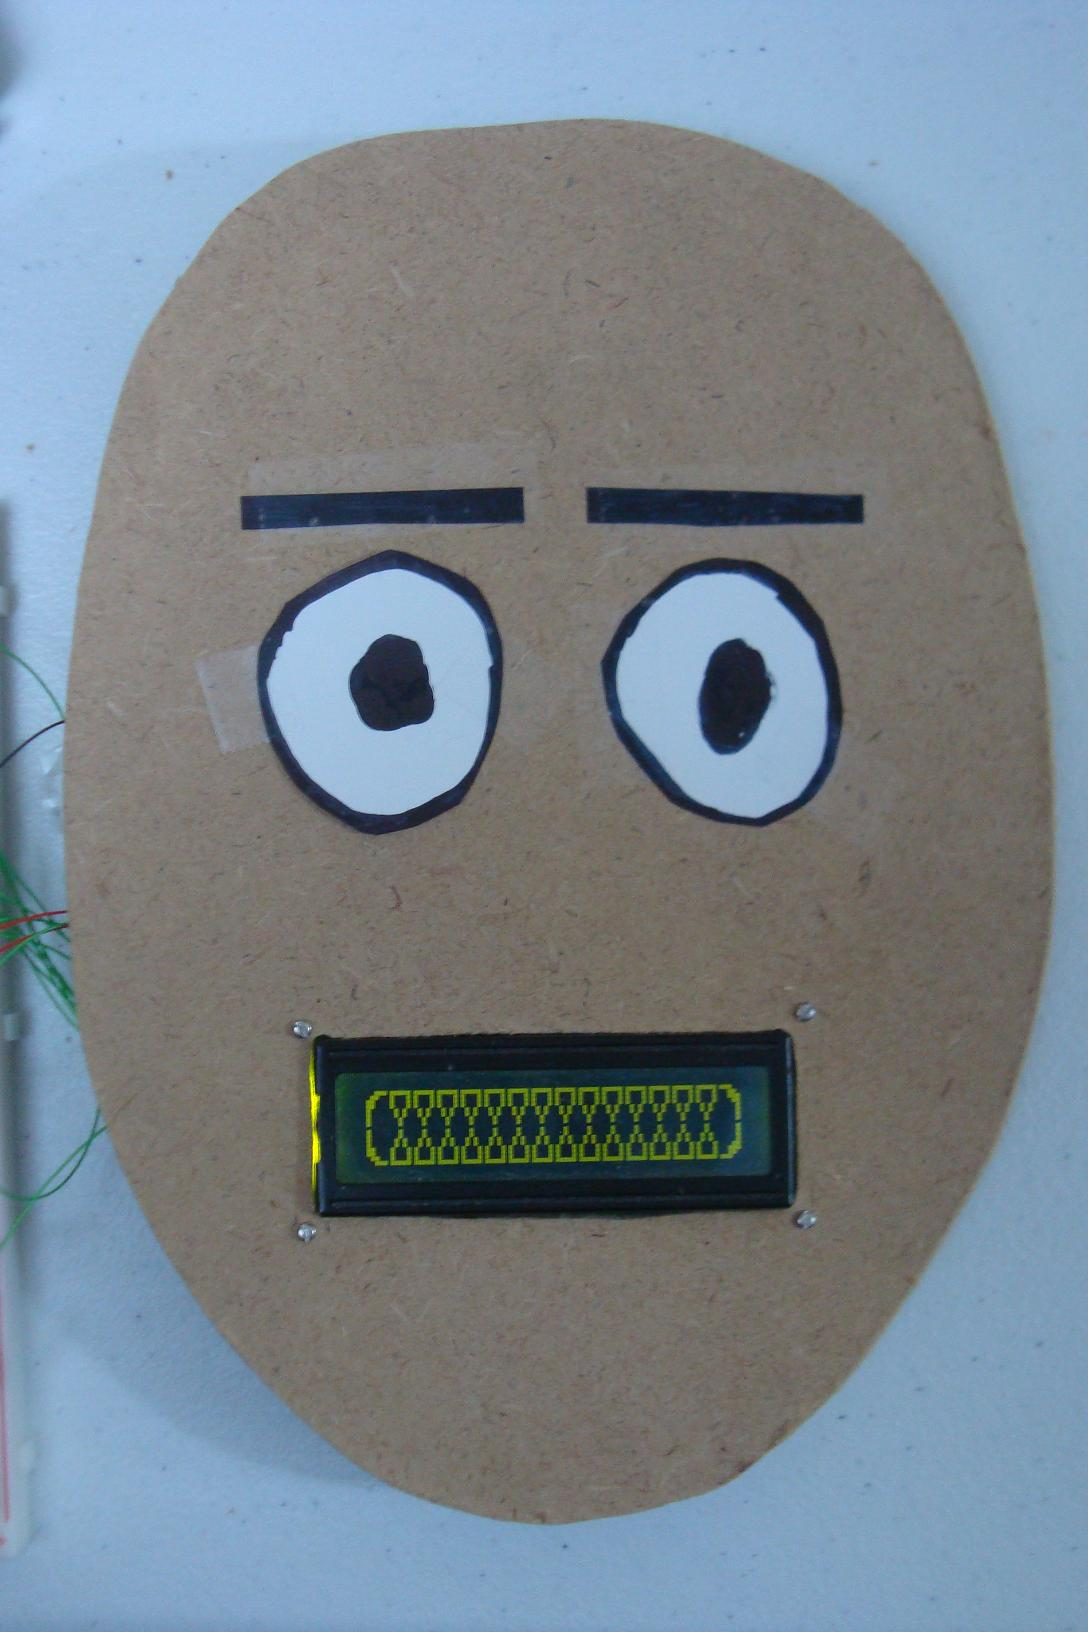 animatronic mouths introduction pyroelectro news projects rh pyroelectro com Electronic Circuit Projects DIY Electronic Projects Schematics